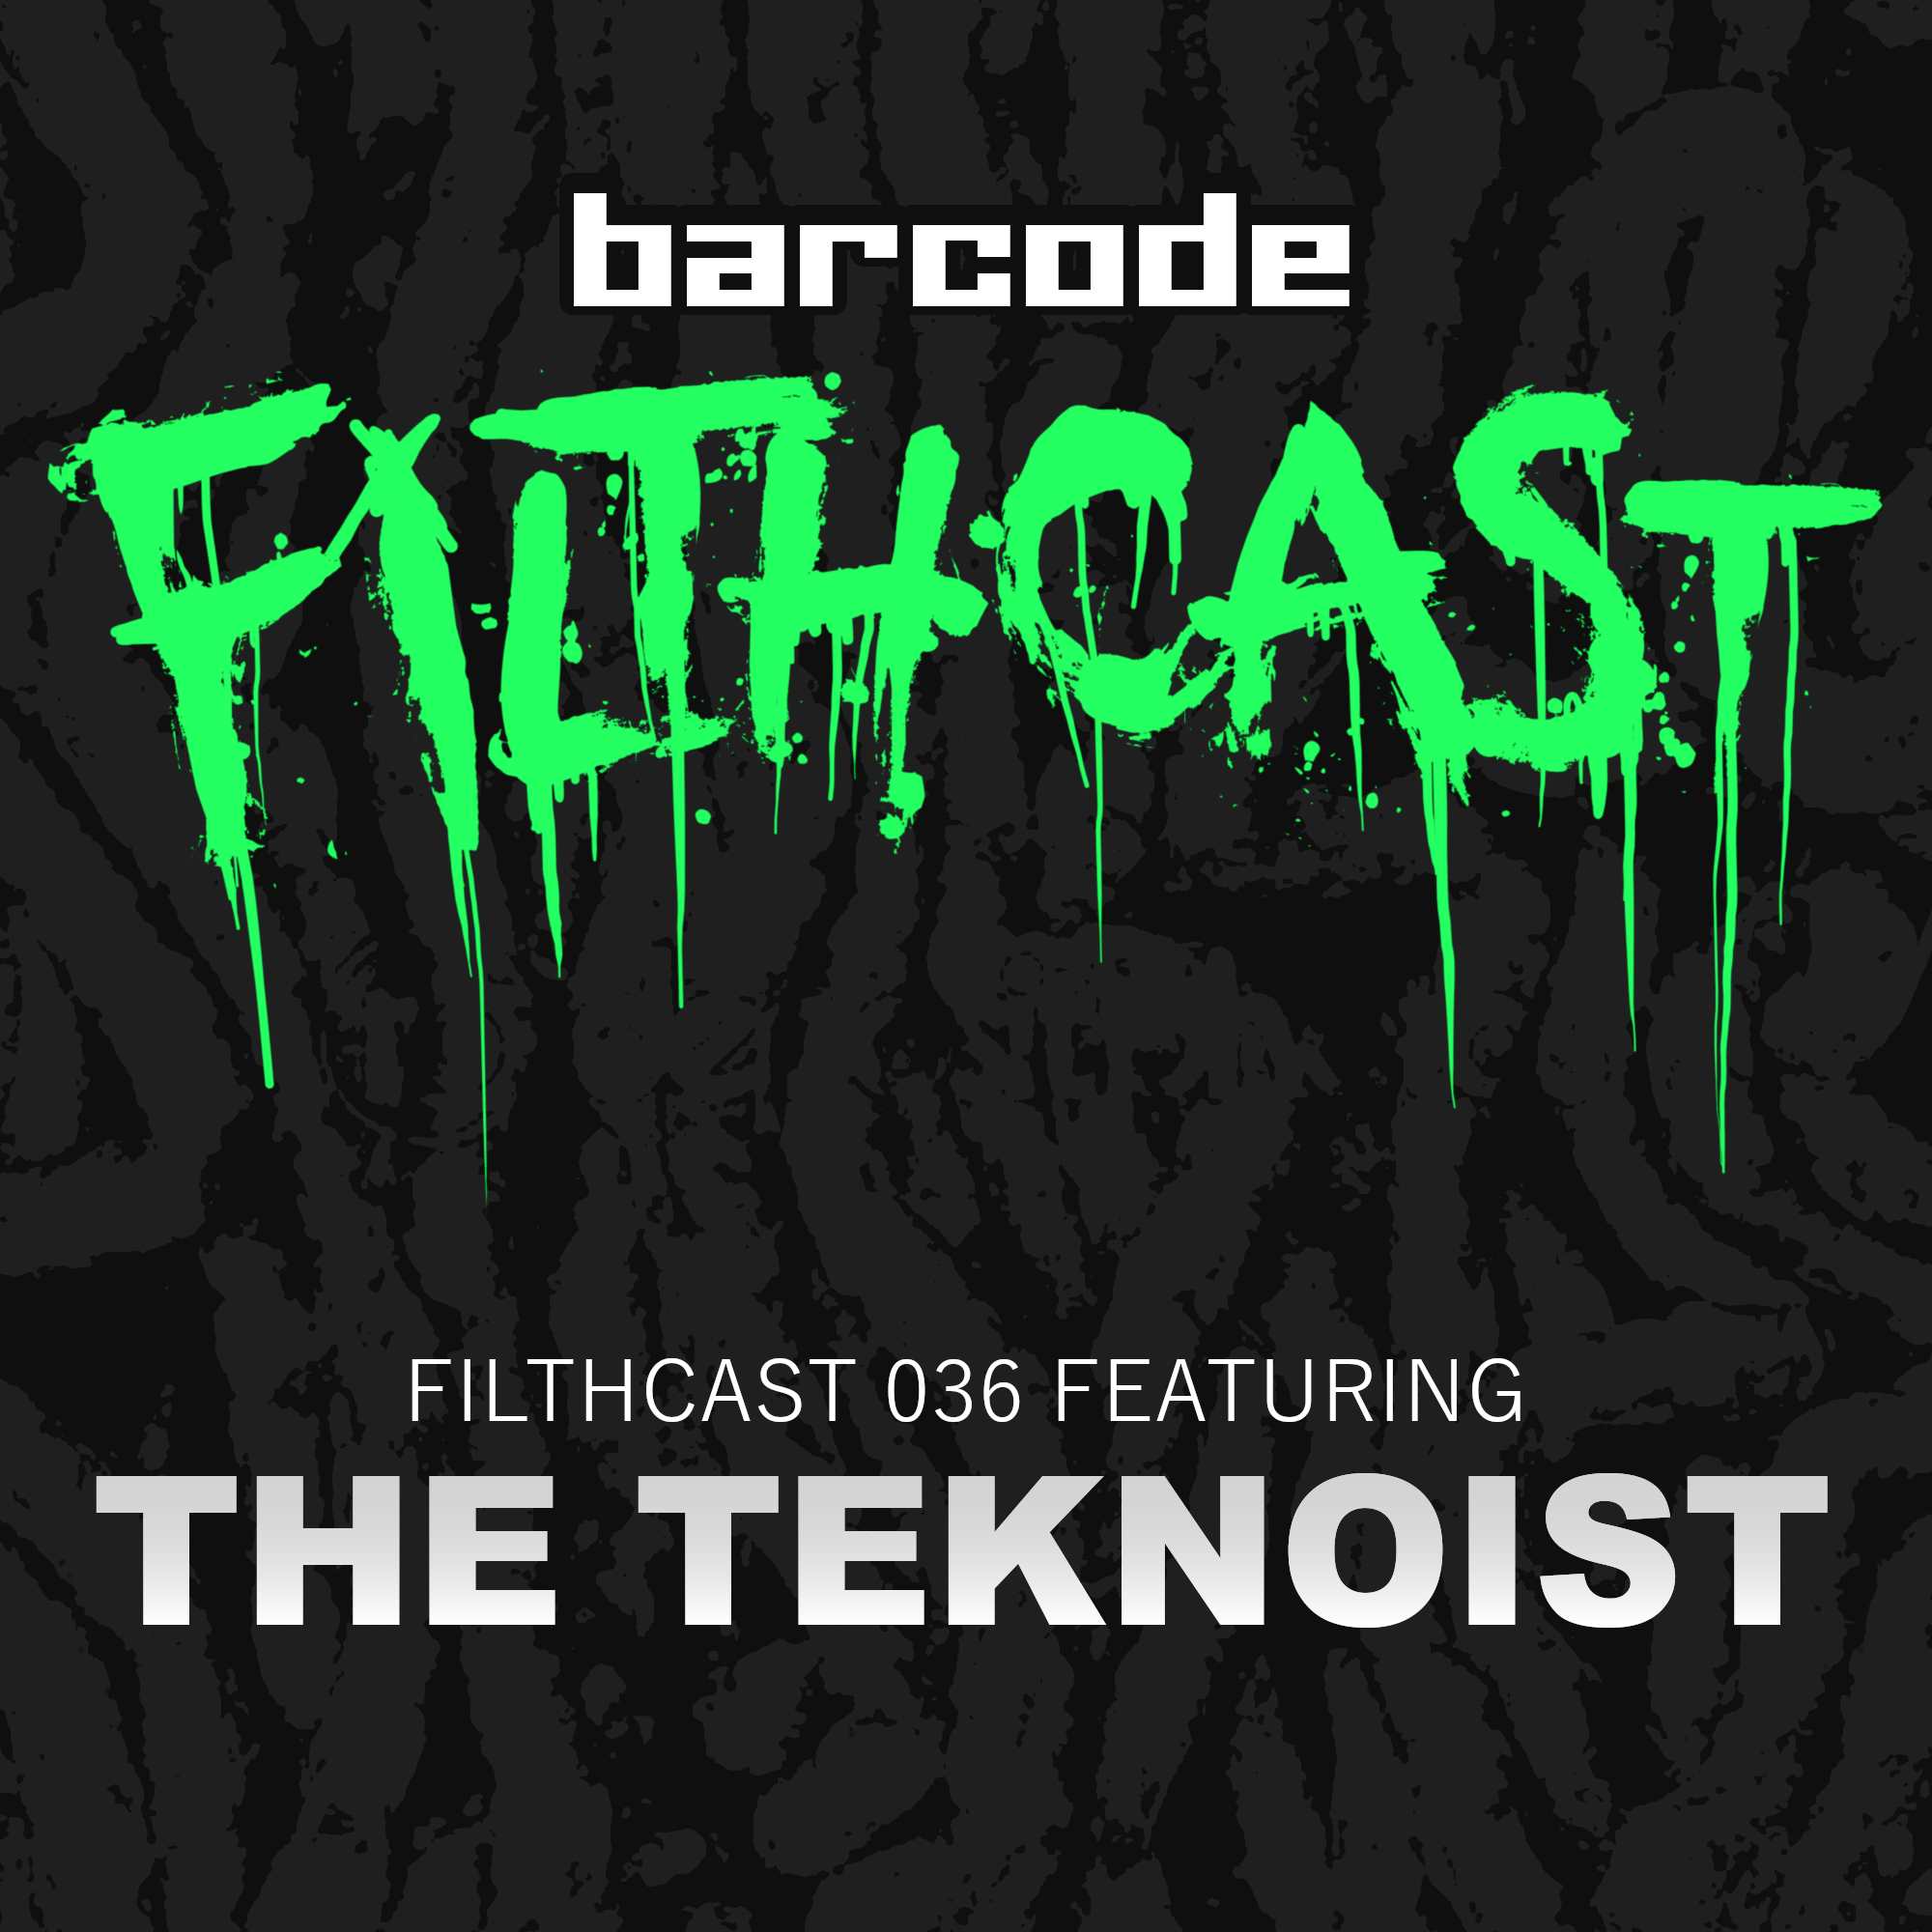 The first Filthcast of 2012 welcomes the return of The Teknoist! This year we aim to broaden our horizons, push the Filthcast into fresh musical directions and incorporate a ton of new and exciting artists. What better way to start than with a brutal mix by The Teknoist...